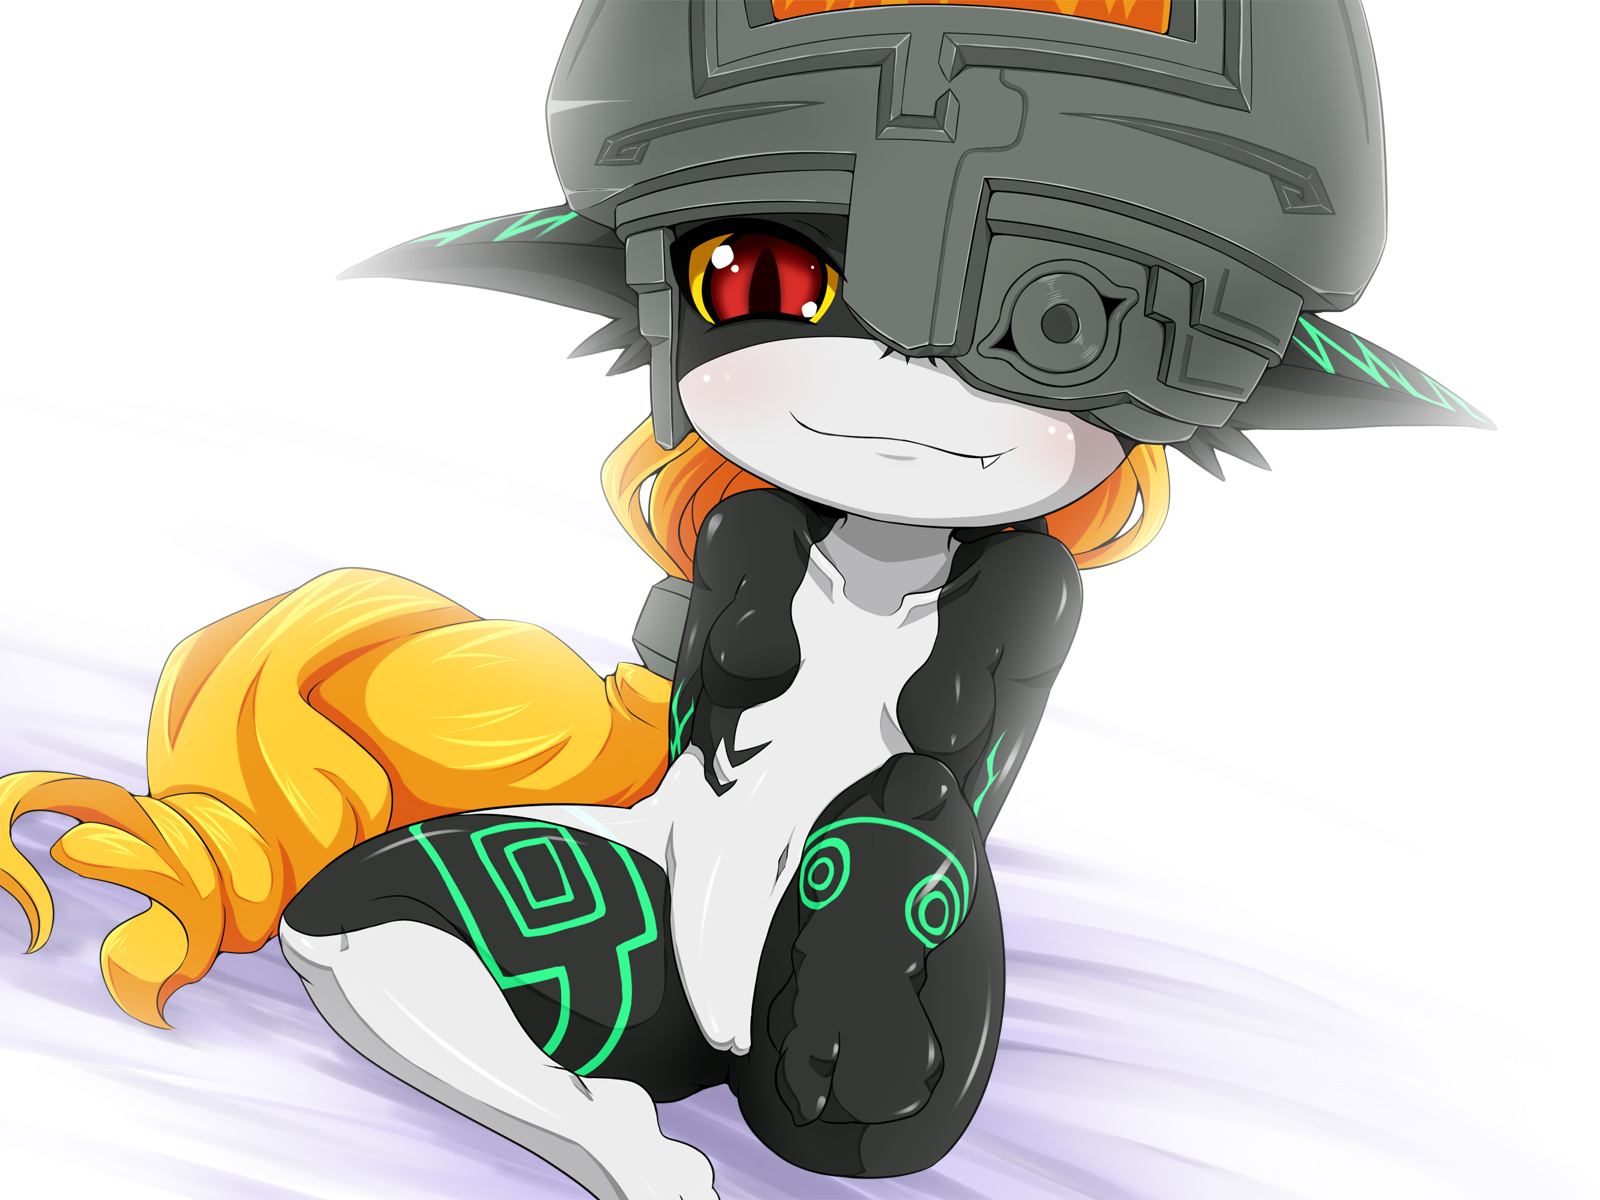 e621 4:3 blush breasts chloroplast female hi_res humanoid looking_at_viewer midna nintendo not_furry nude pussy red_eyes simple_background sitting solo the_legend_of_zelda twili twilight_princess video_games